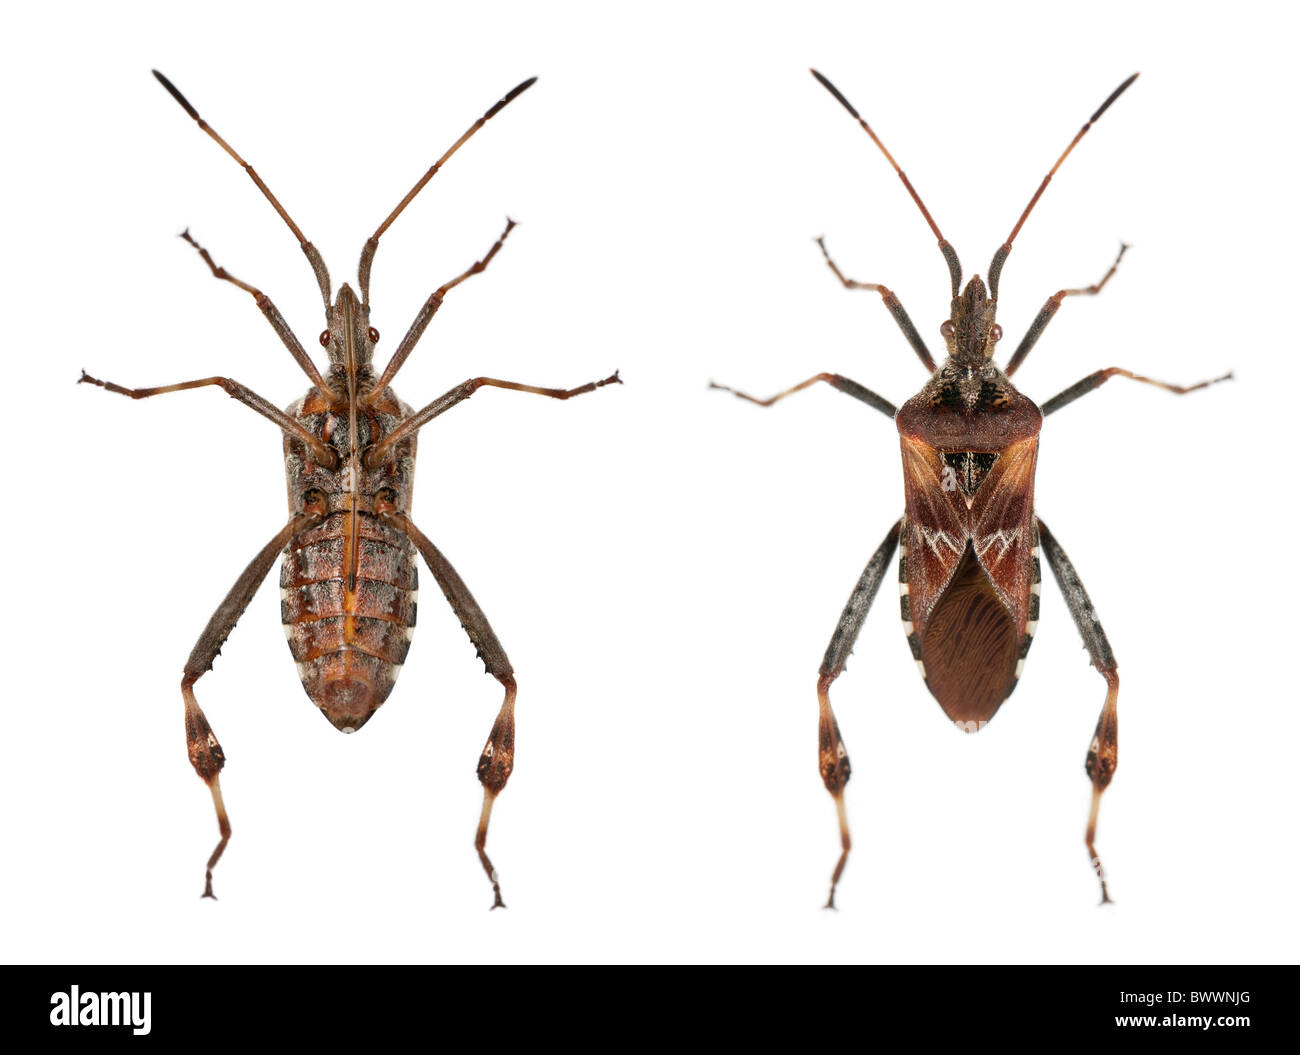 Western conifer seed bugs, Leptoglossus occidentalis, in front of white background - Stock Image